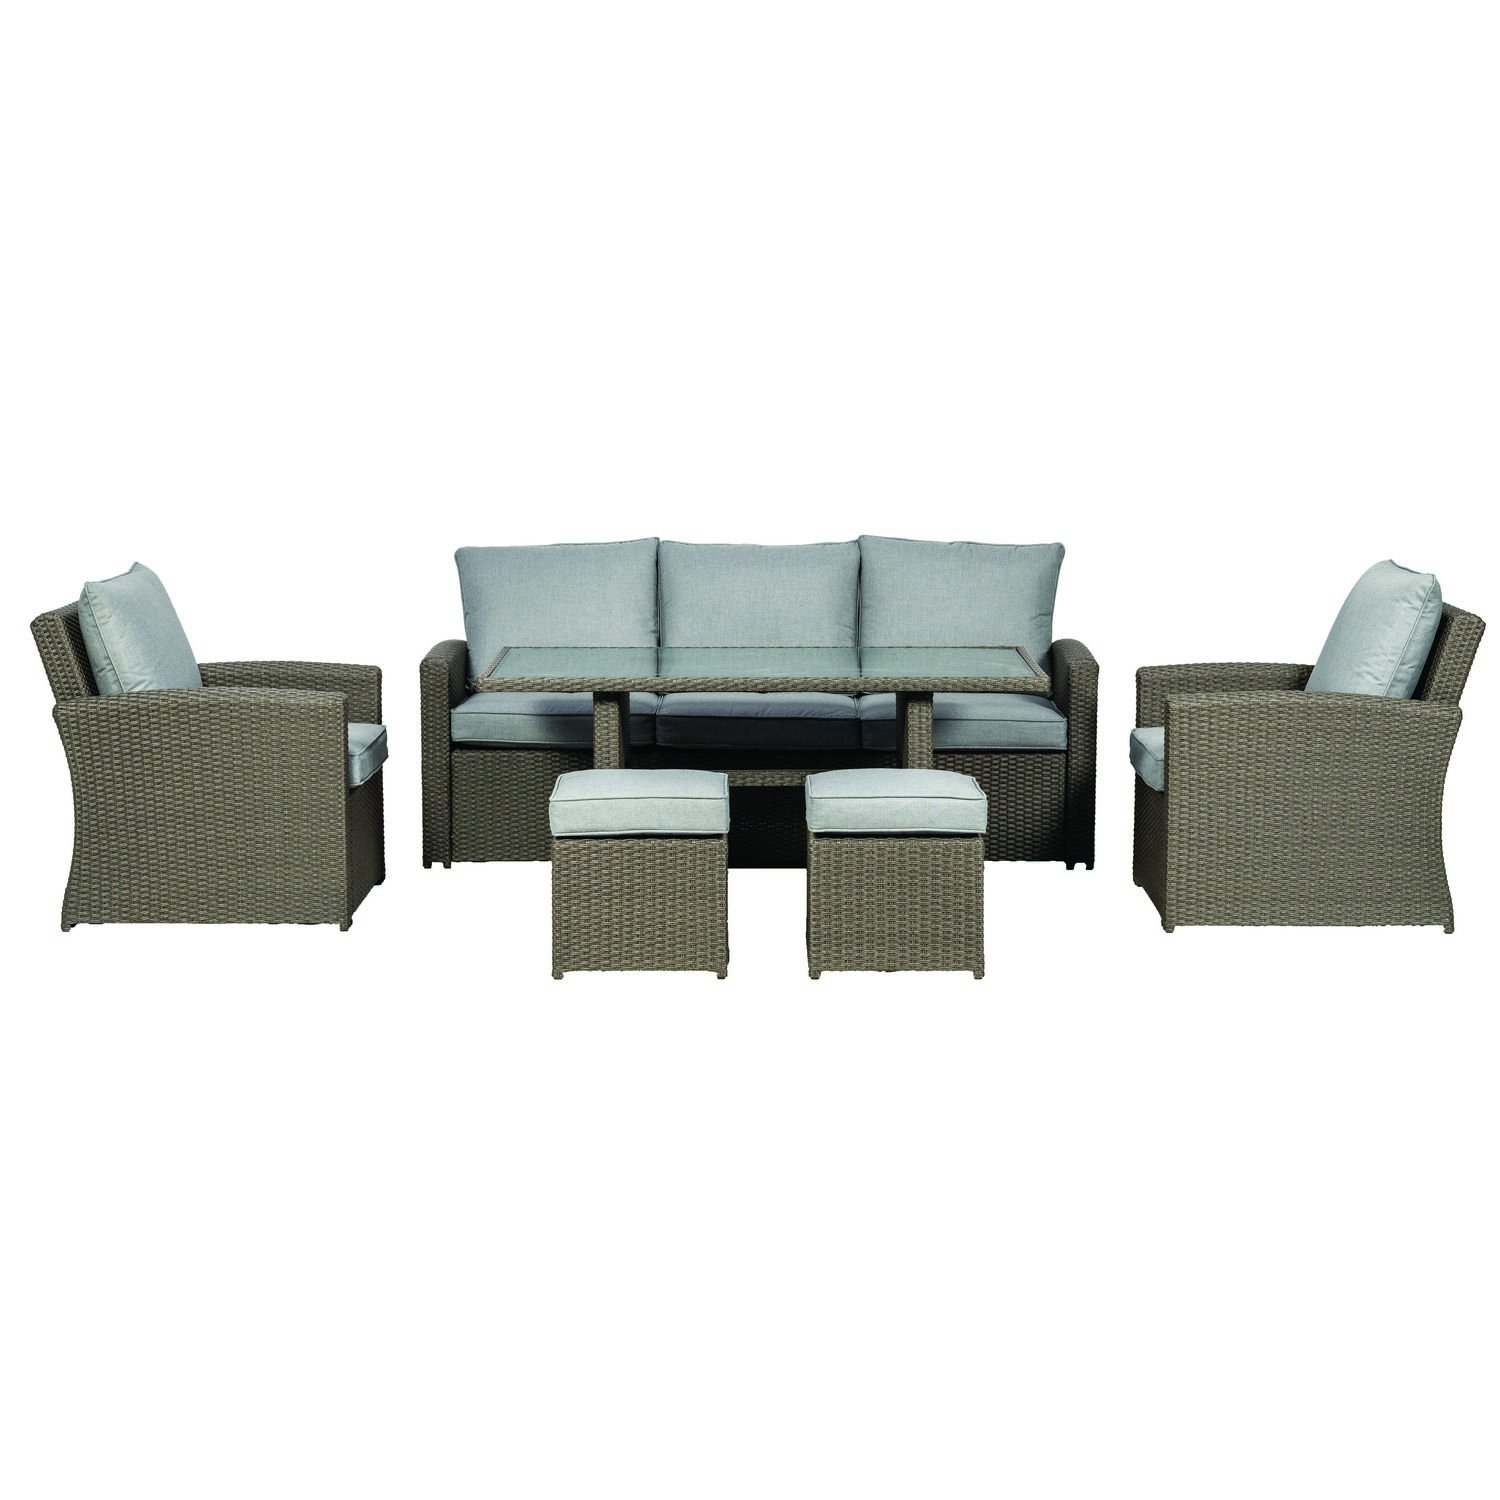 image-Royalcraft Garden Furniture Paris 7 Seater Deluxe Sofa Dining Set